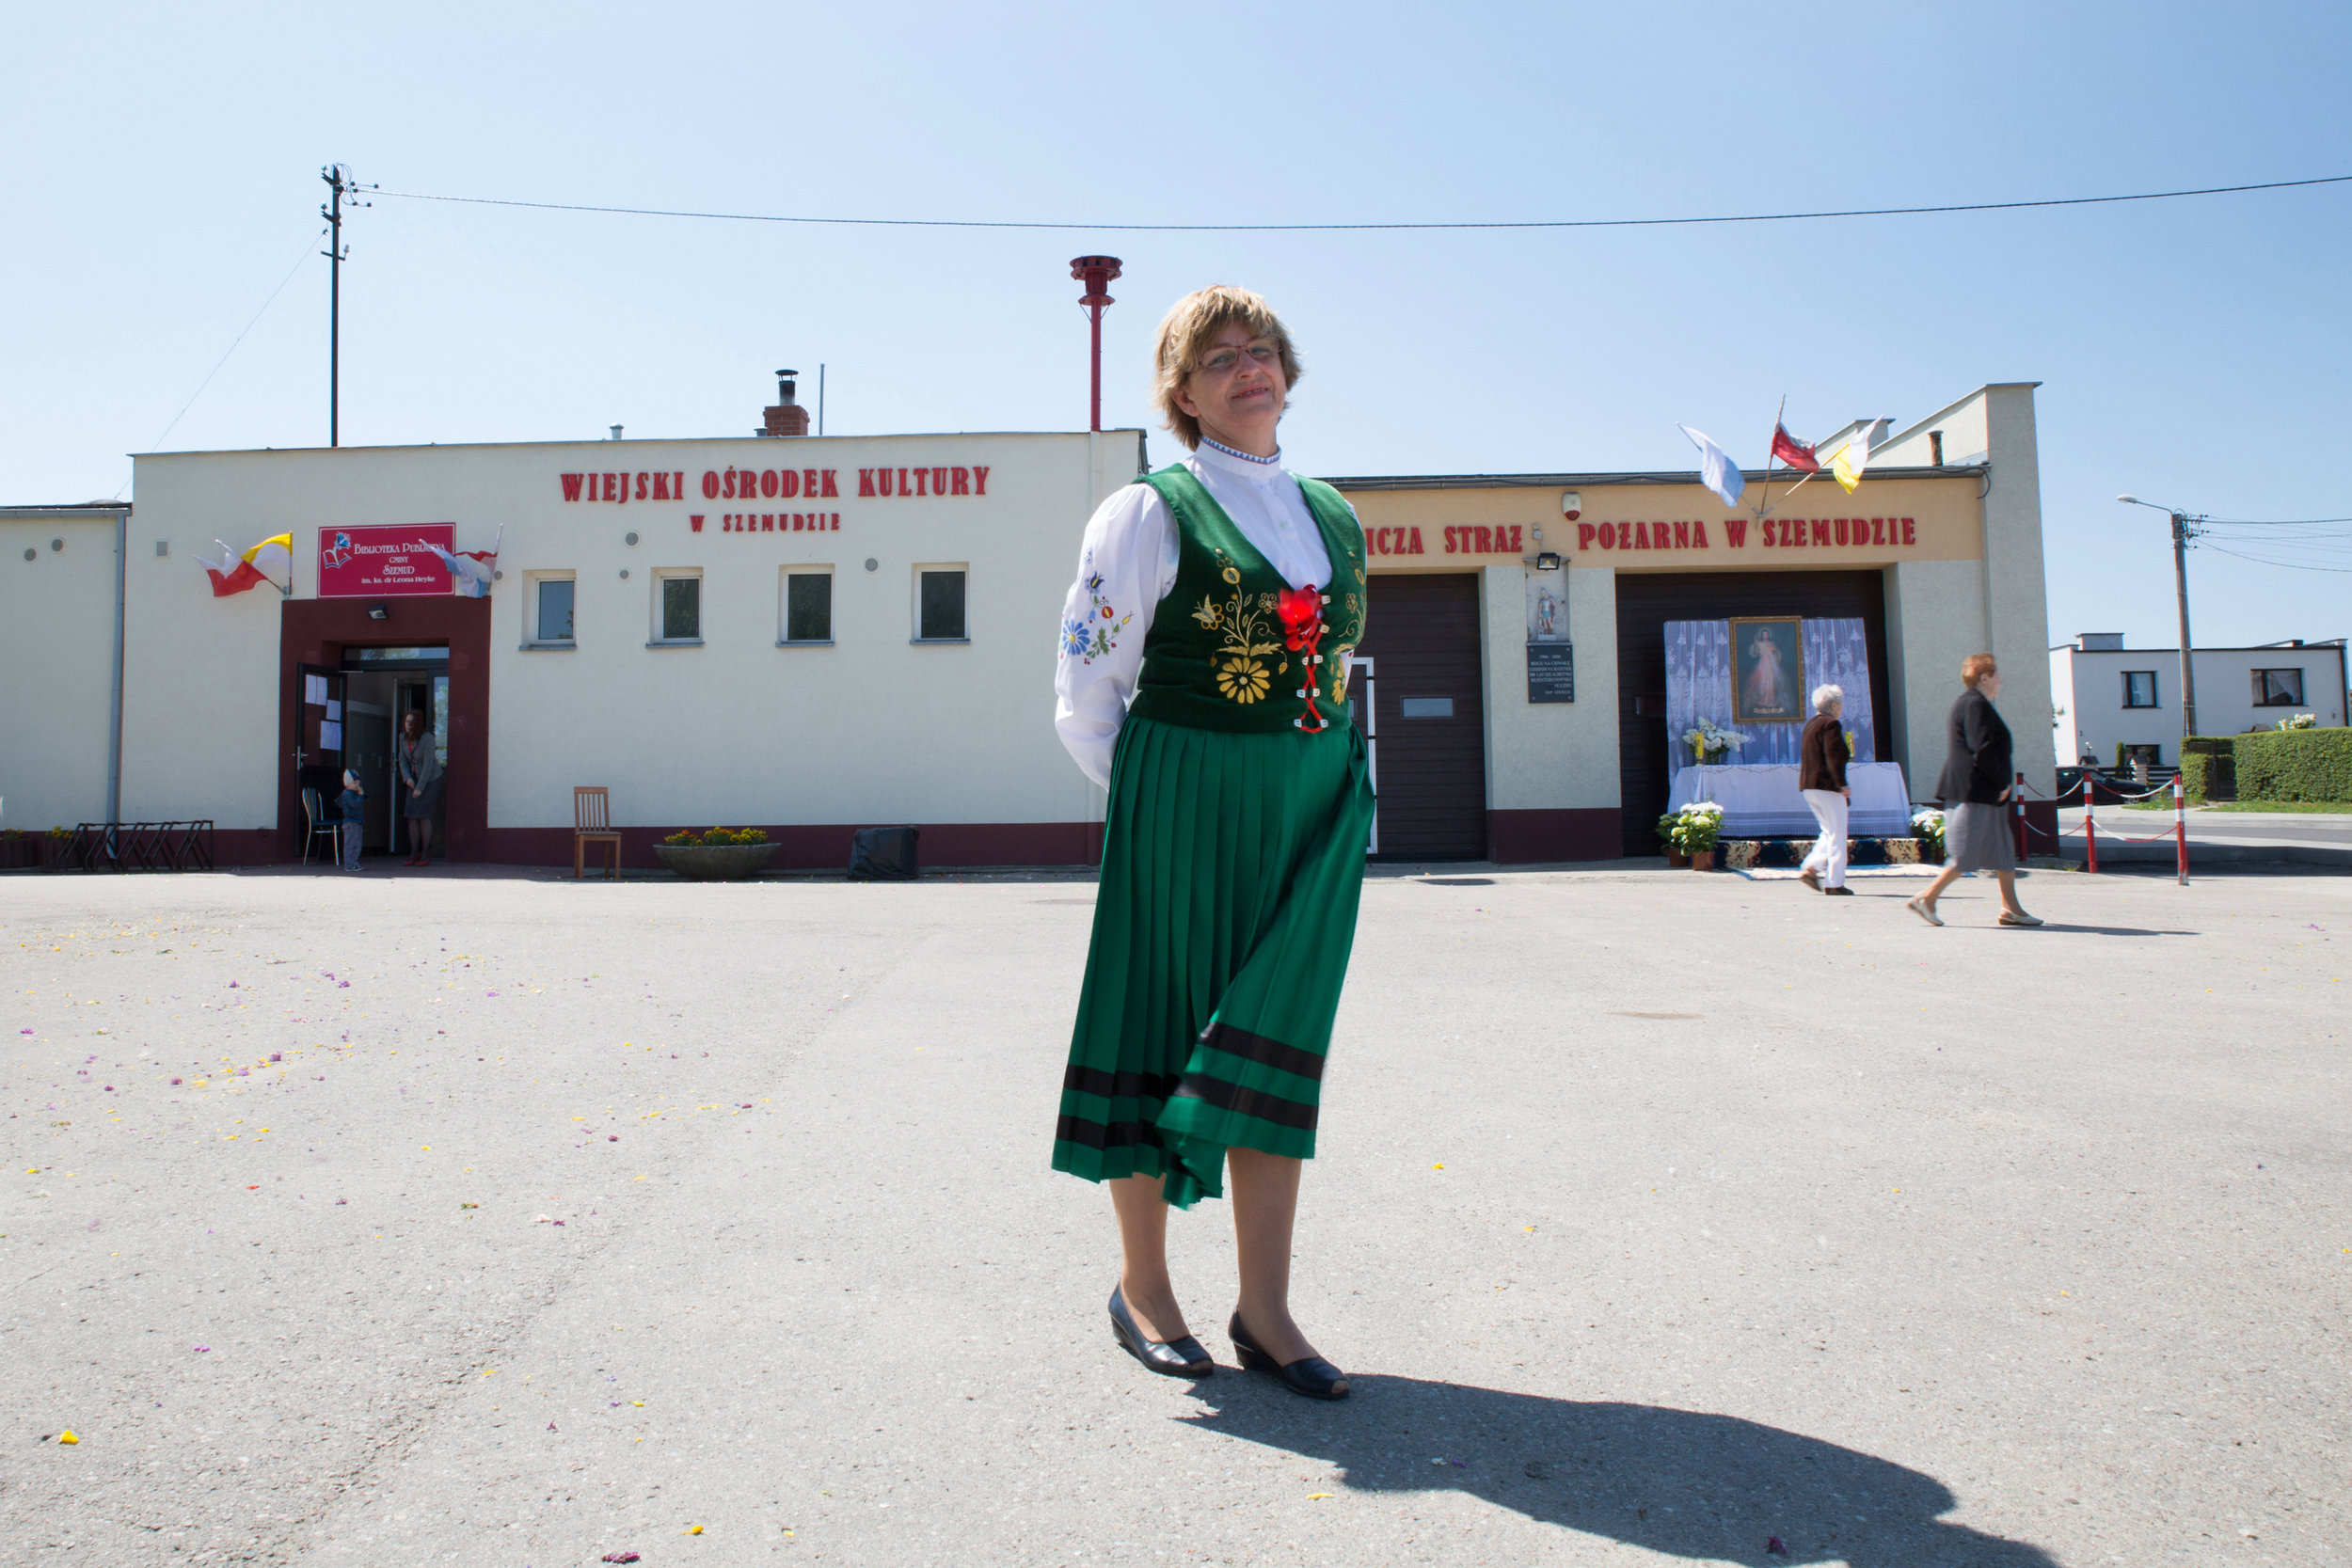 A woman wearing a traditional Kashubian outfit waits to join a religious procession in Szemud.